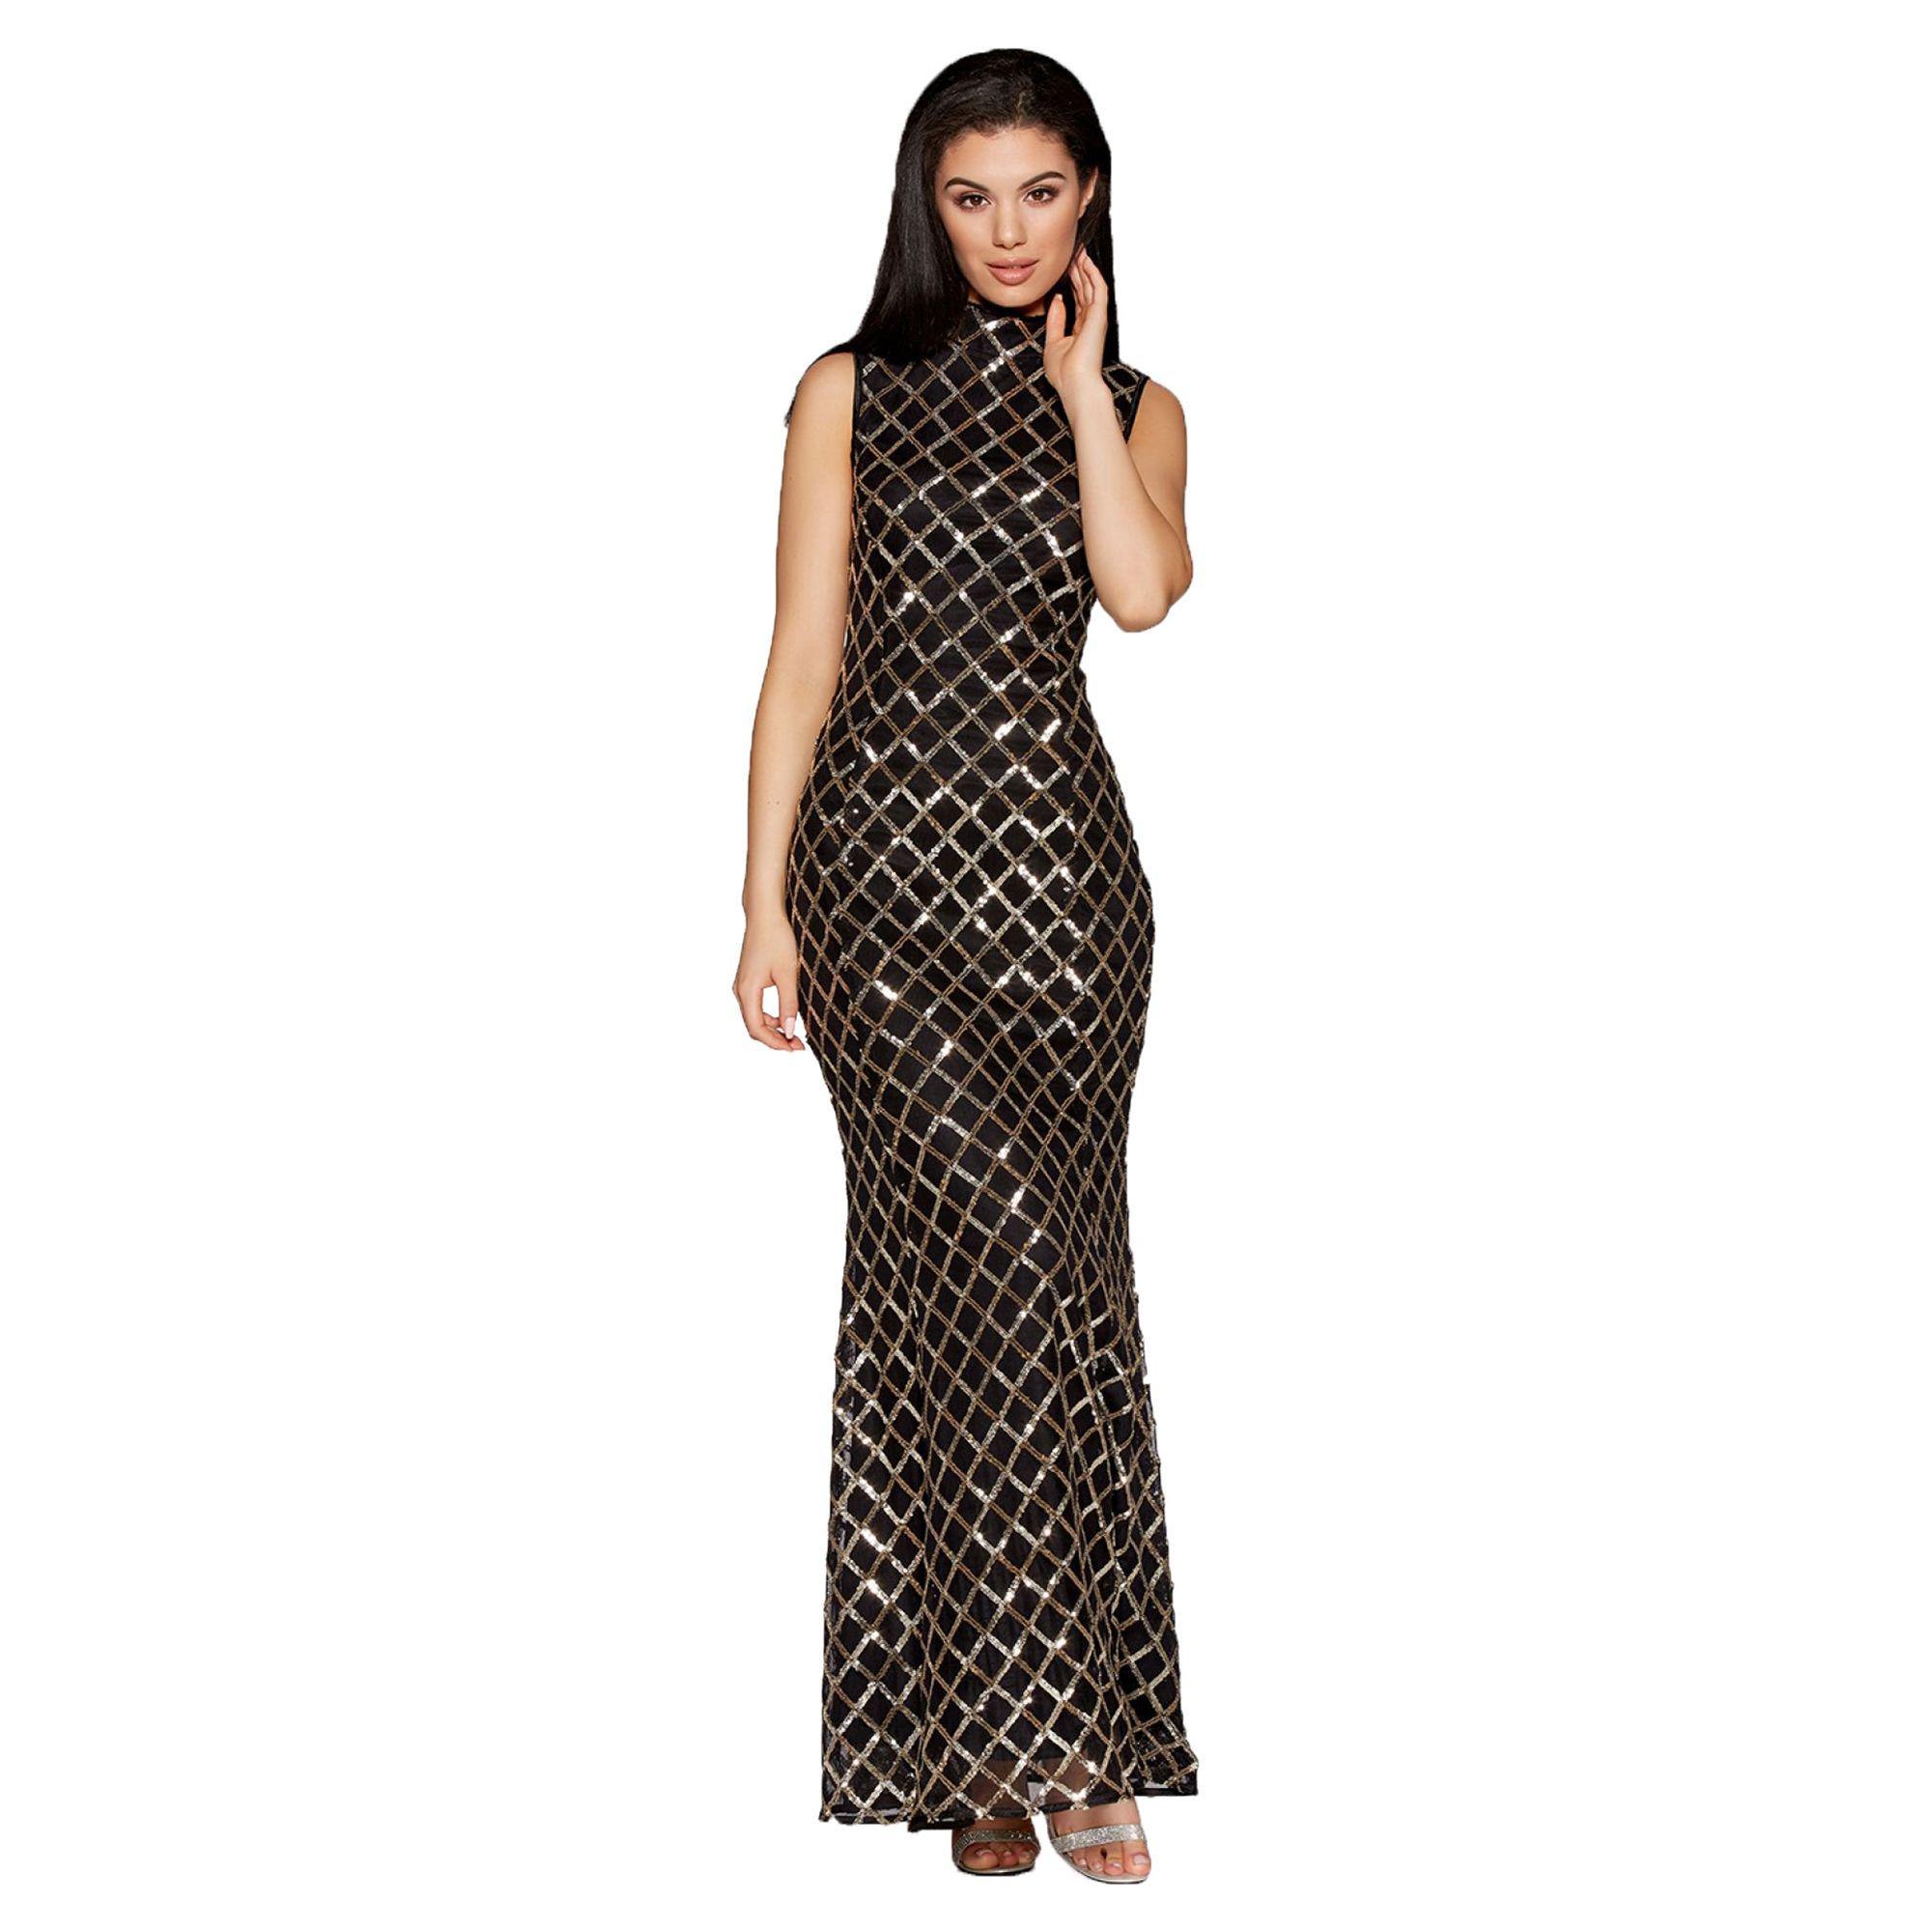 dcb58279 Quiz Black And Gold Sequin High Neck Fishtail Maxi Dress - Photo ...